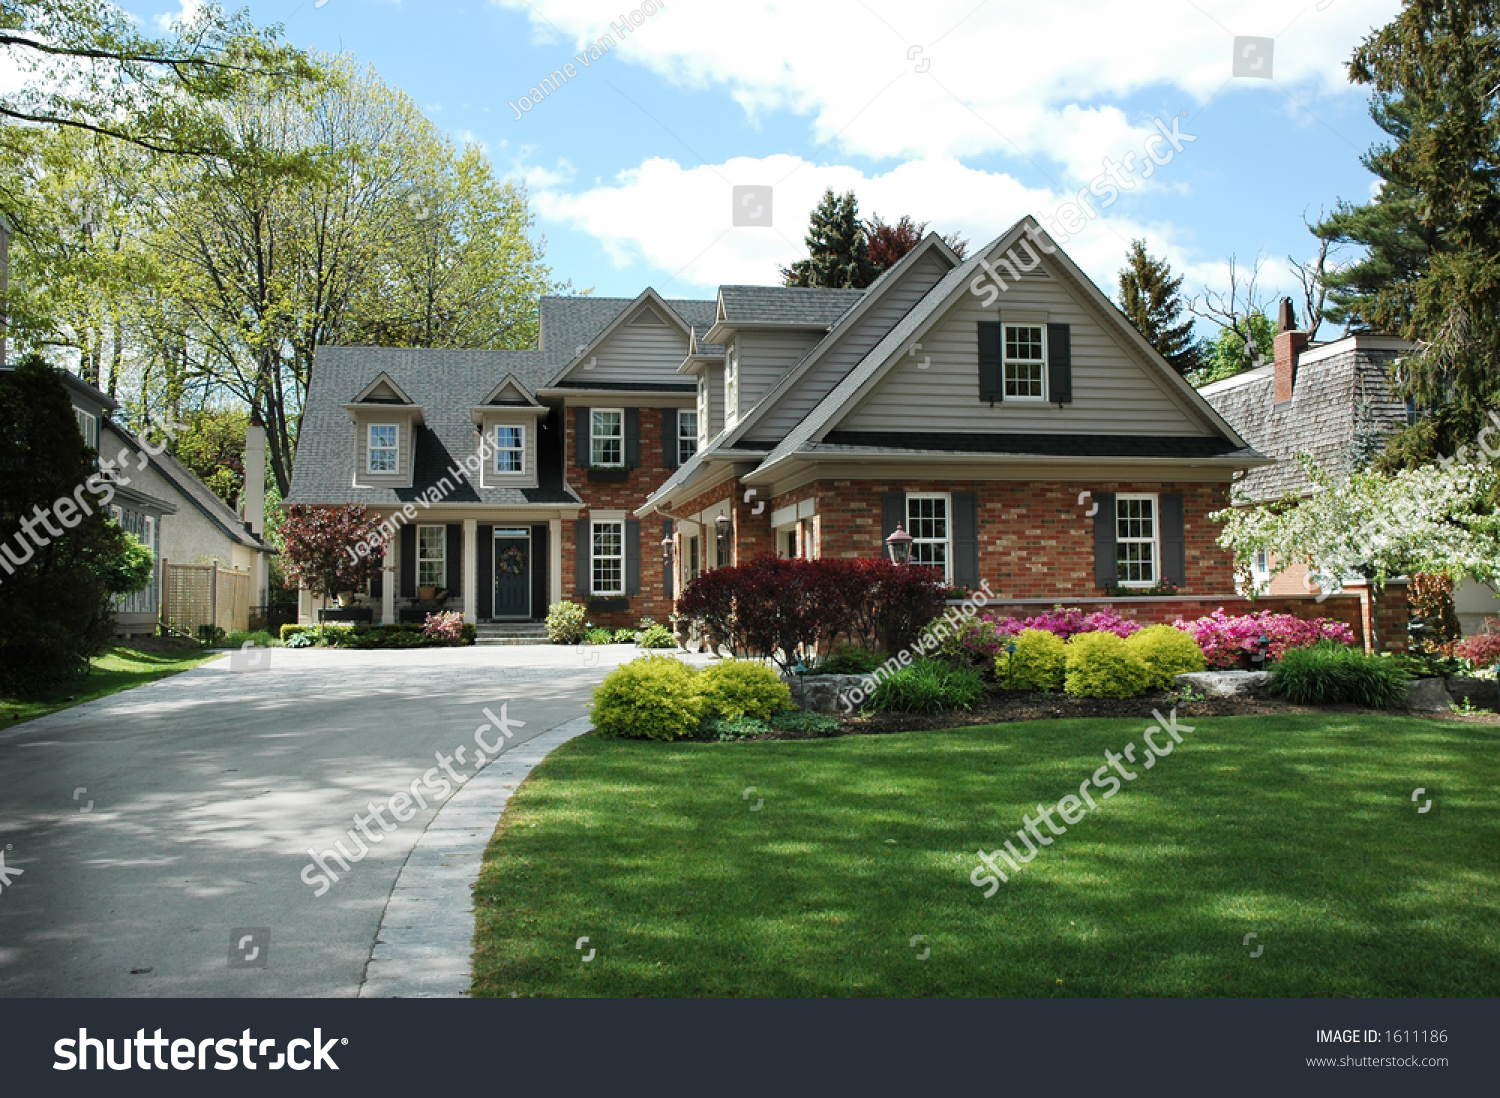 Red brick house with black shutters and pretty manicured lawn garden arkivbilde 1611186 - Red brick house black shutters ...